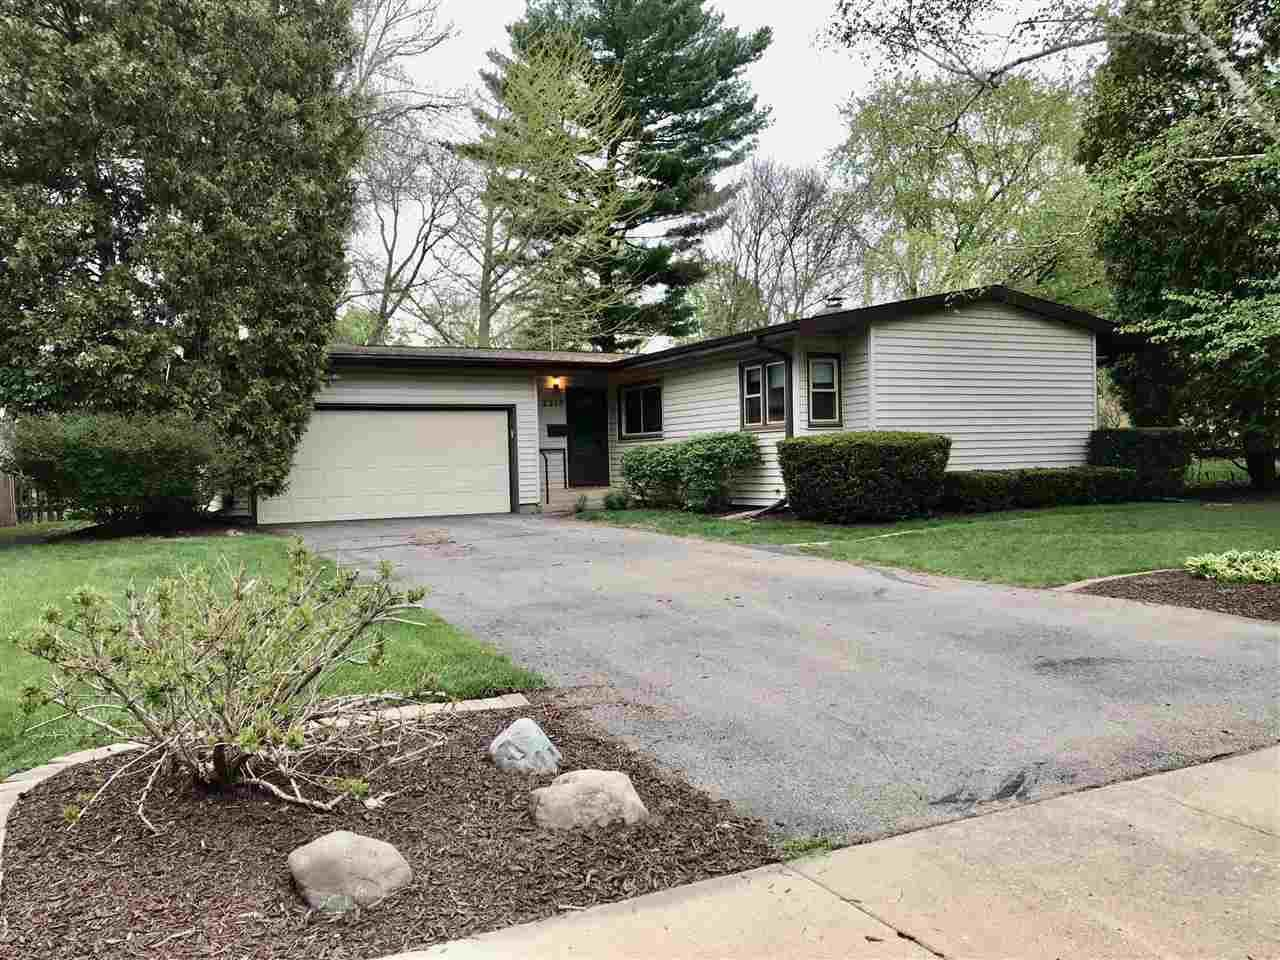 2213 Tanager Tr, Madison, WI 53711 - #: 1909254